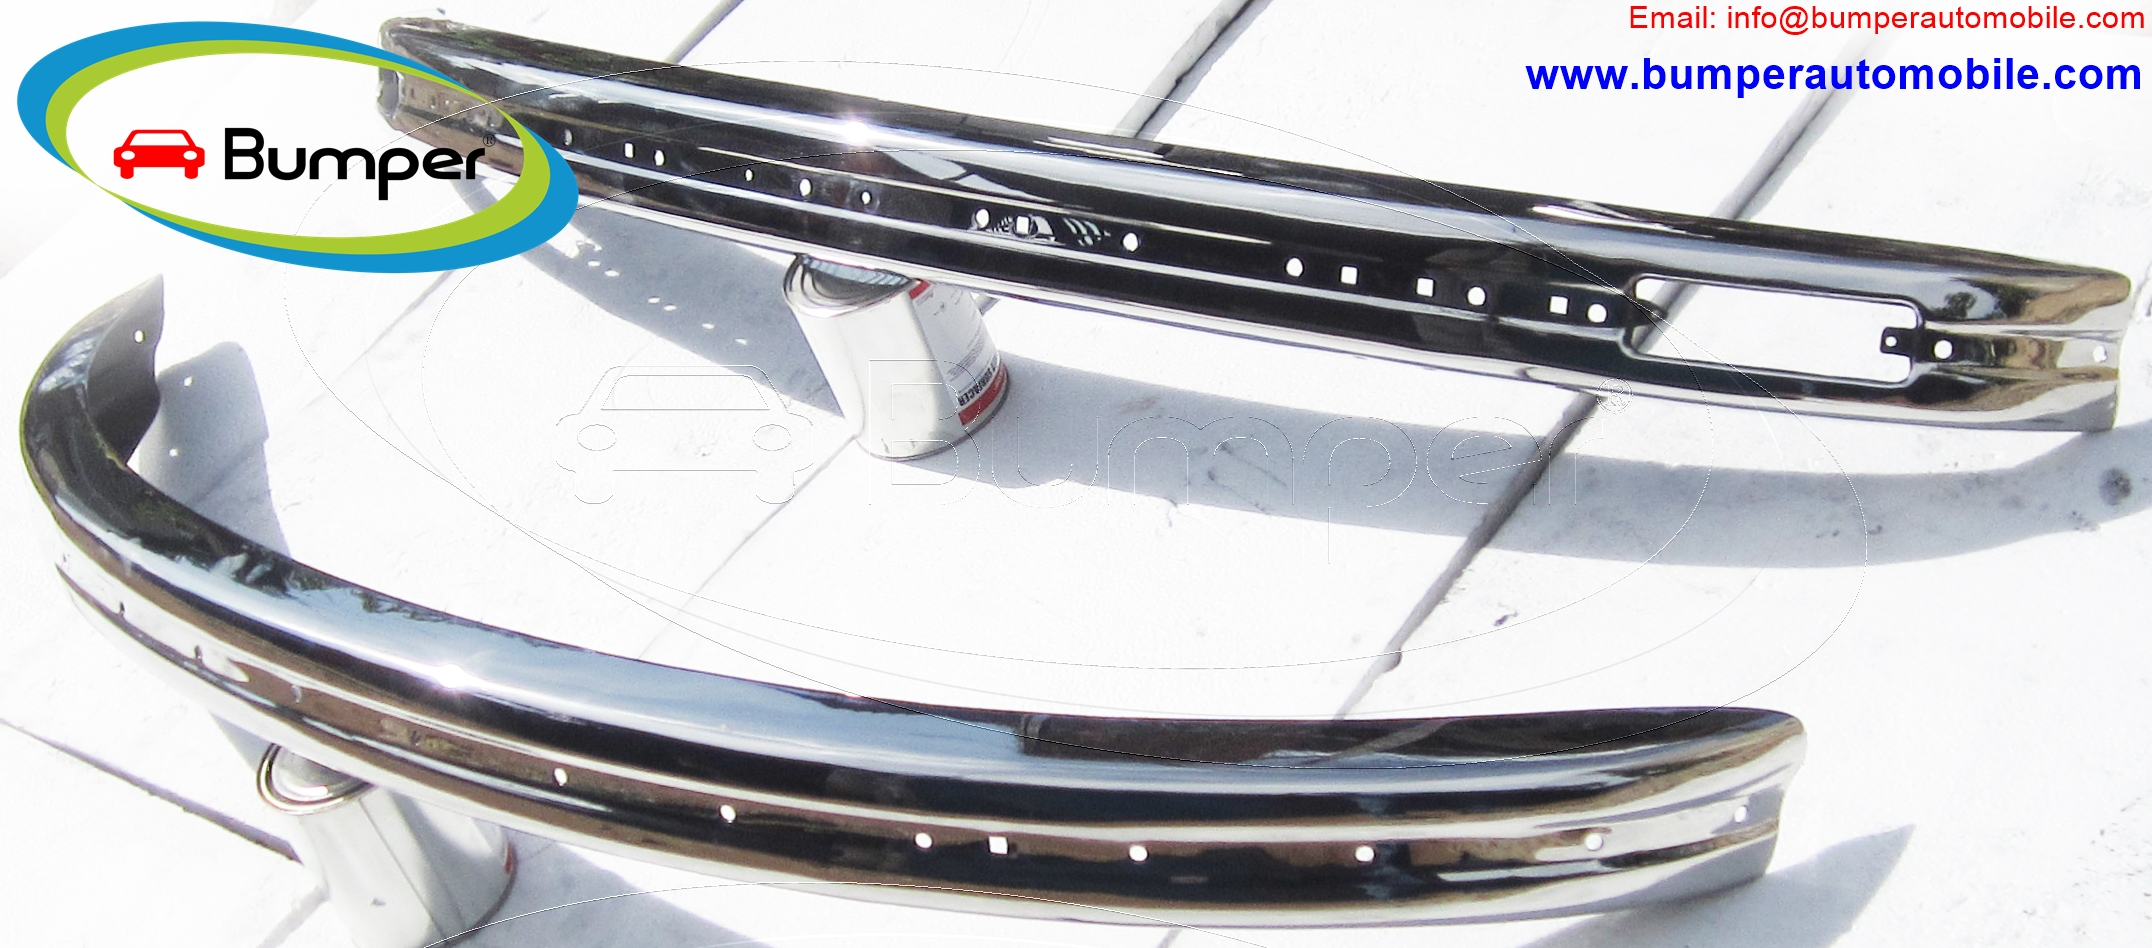 VW Beetle bumpers 1975 and onwards bumper stainless steel